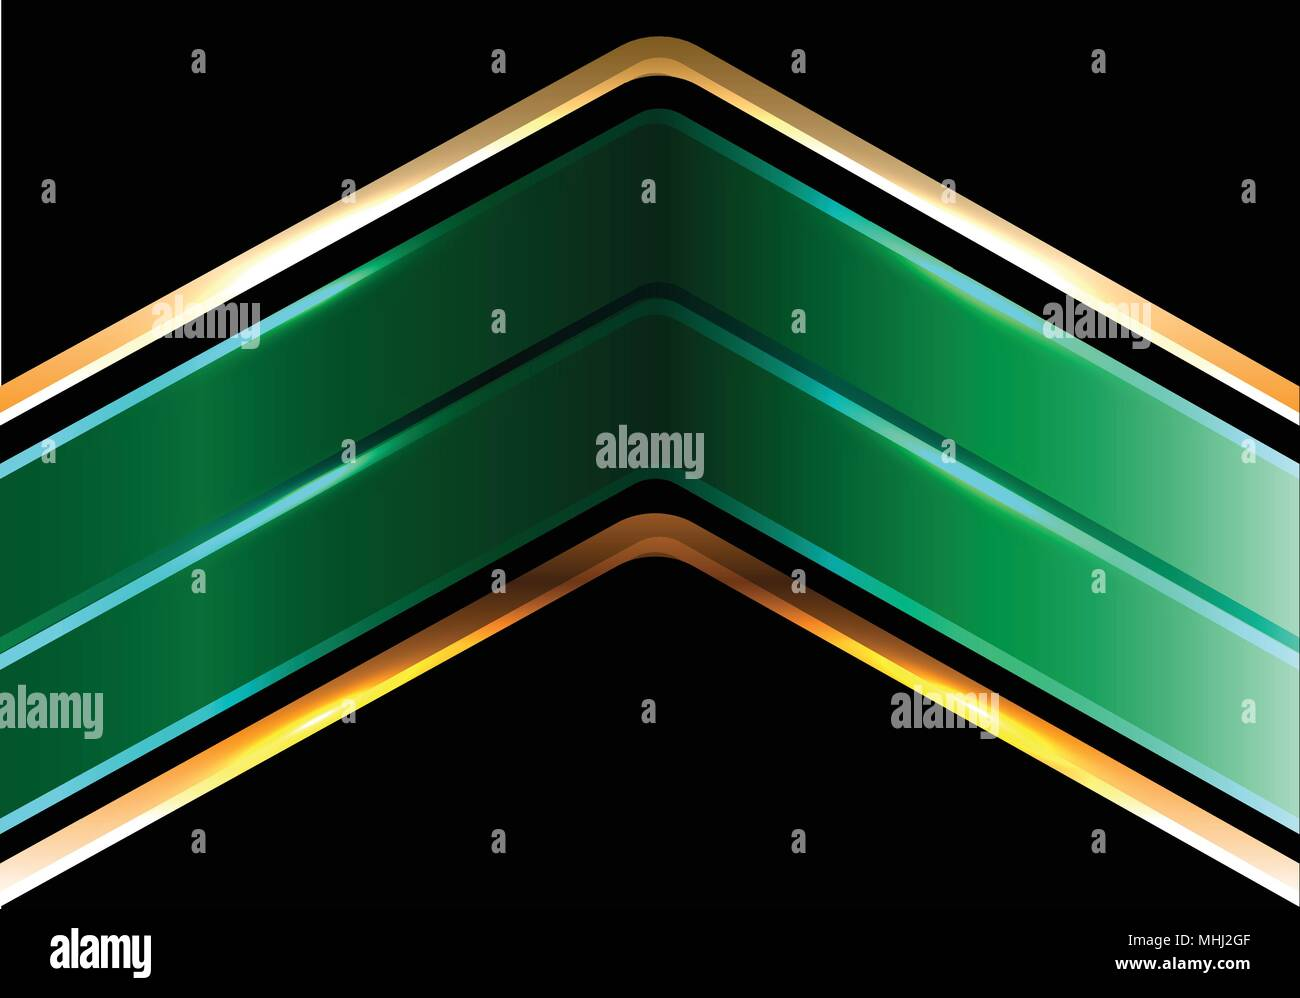 abstract double green gold line arrow on black design